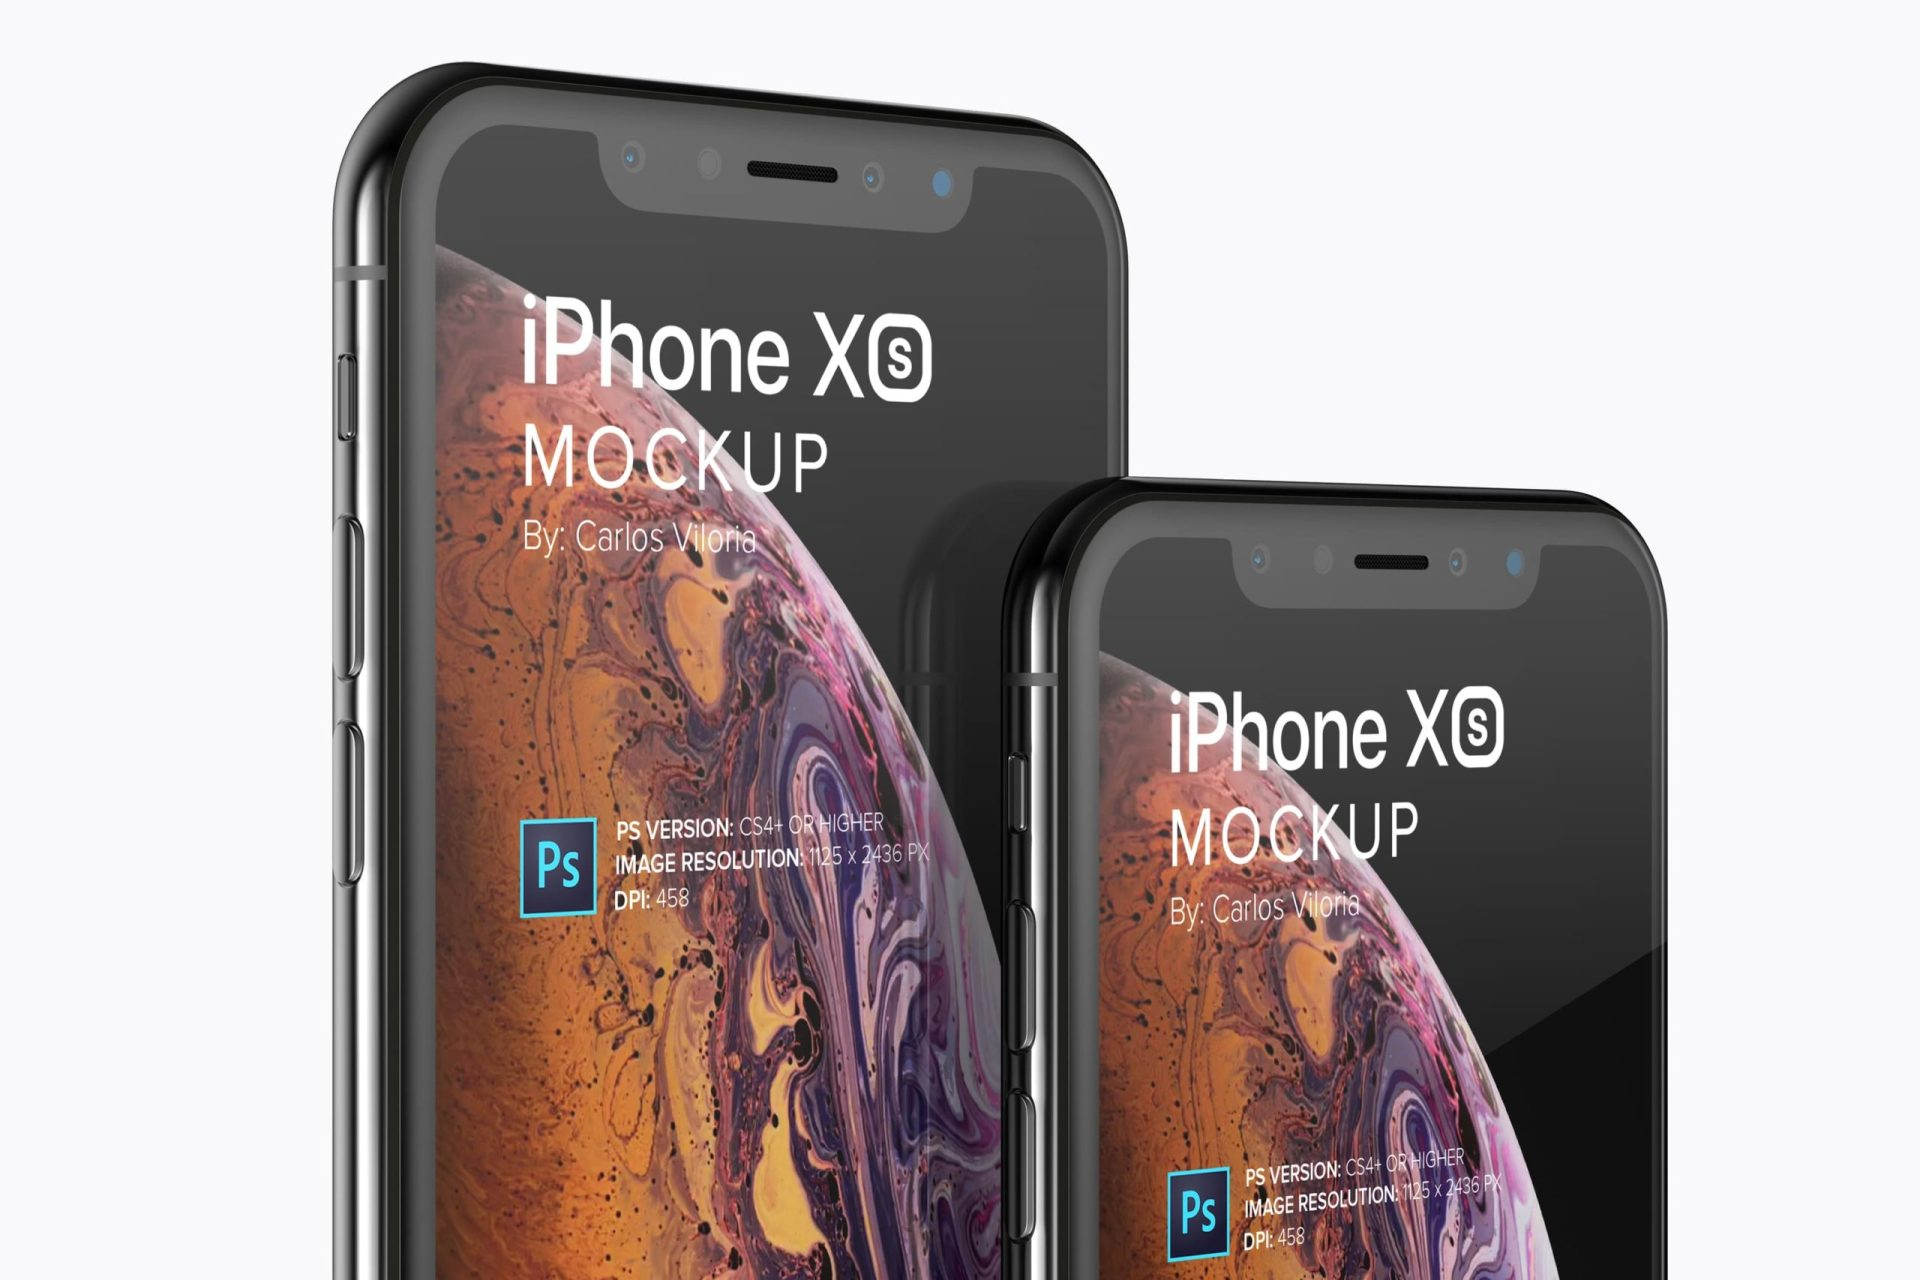 iPhone XS Mockup for App and UI Design